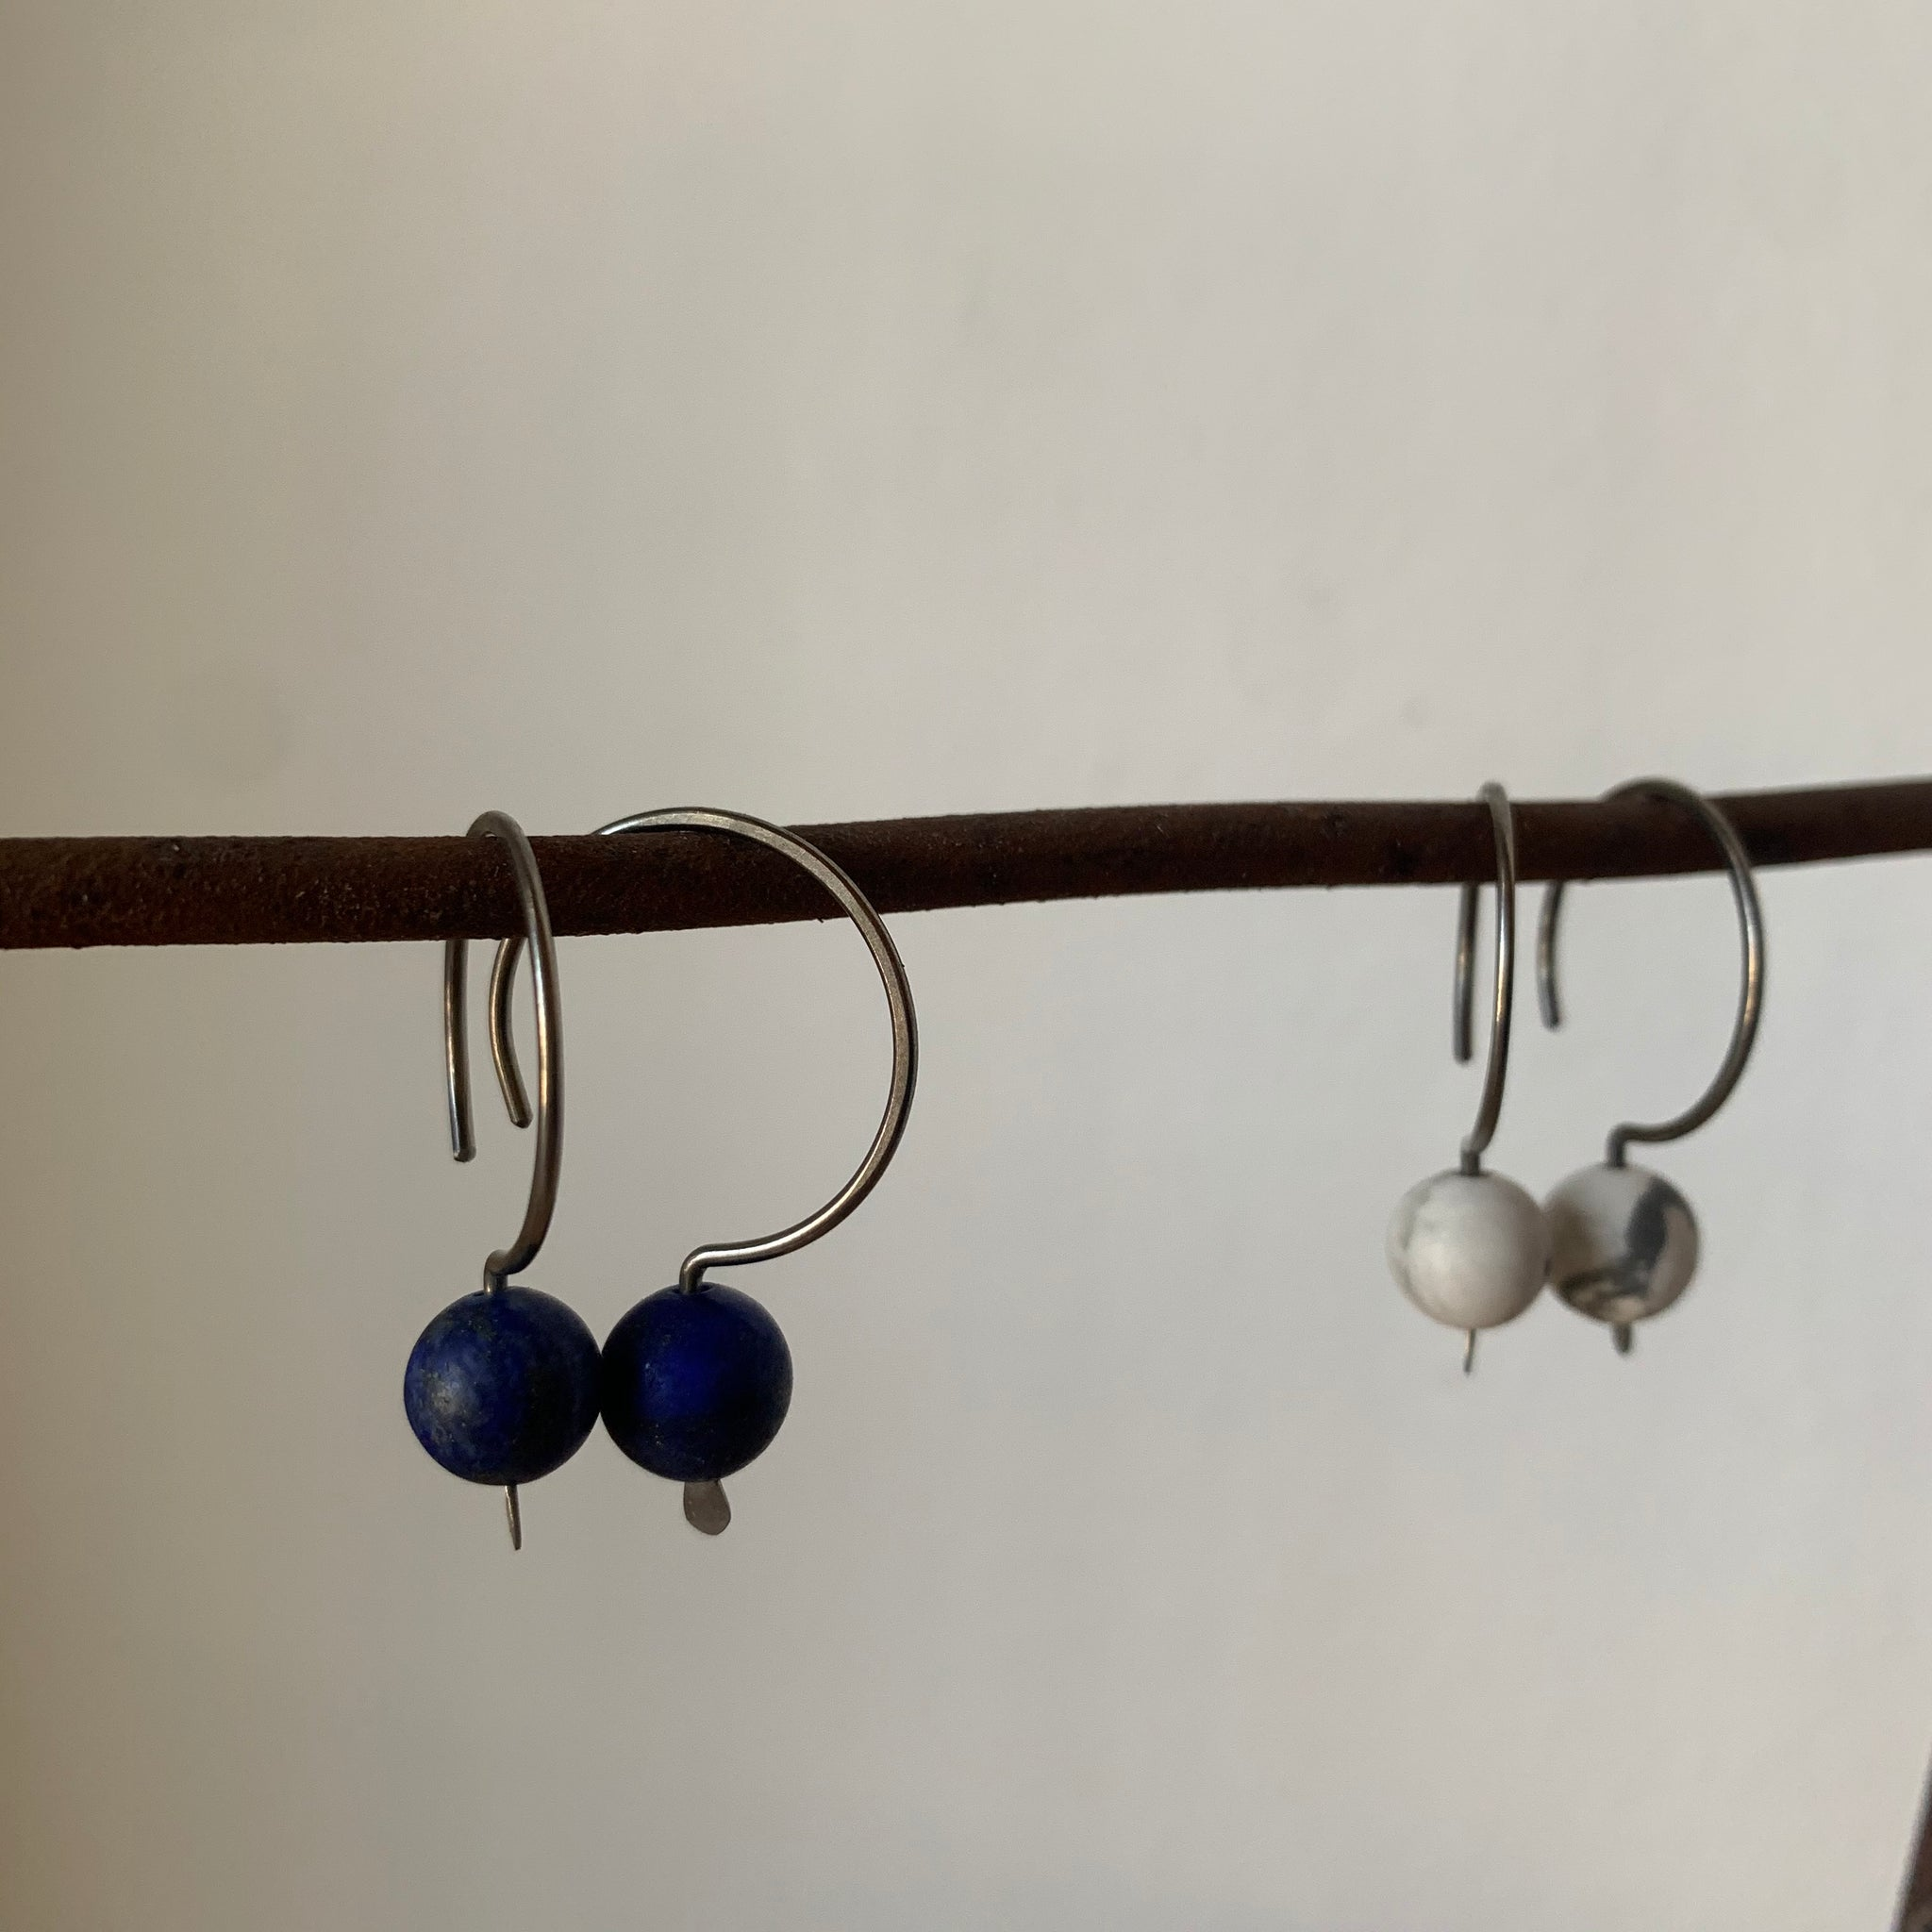 Niobium Hook Pull-Through Earrings with Stone Bead by Jovy Rockey - Upstate MN